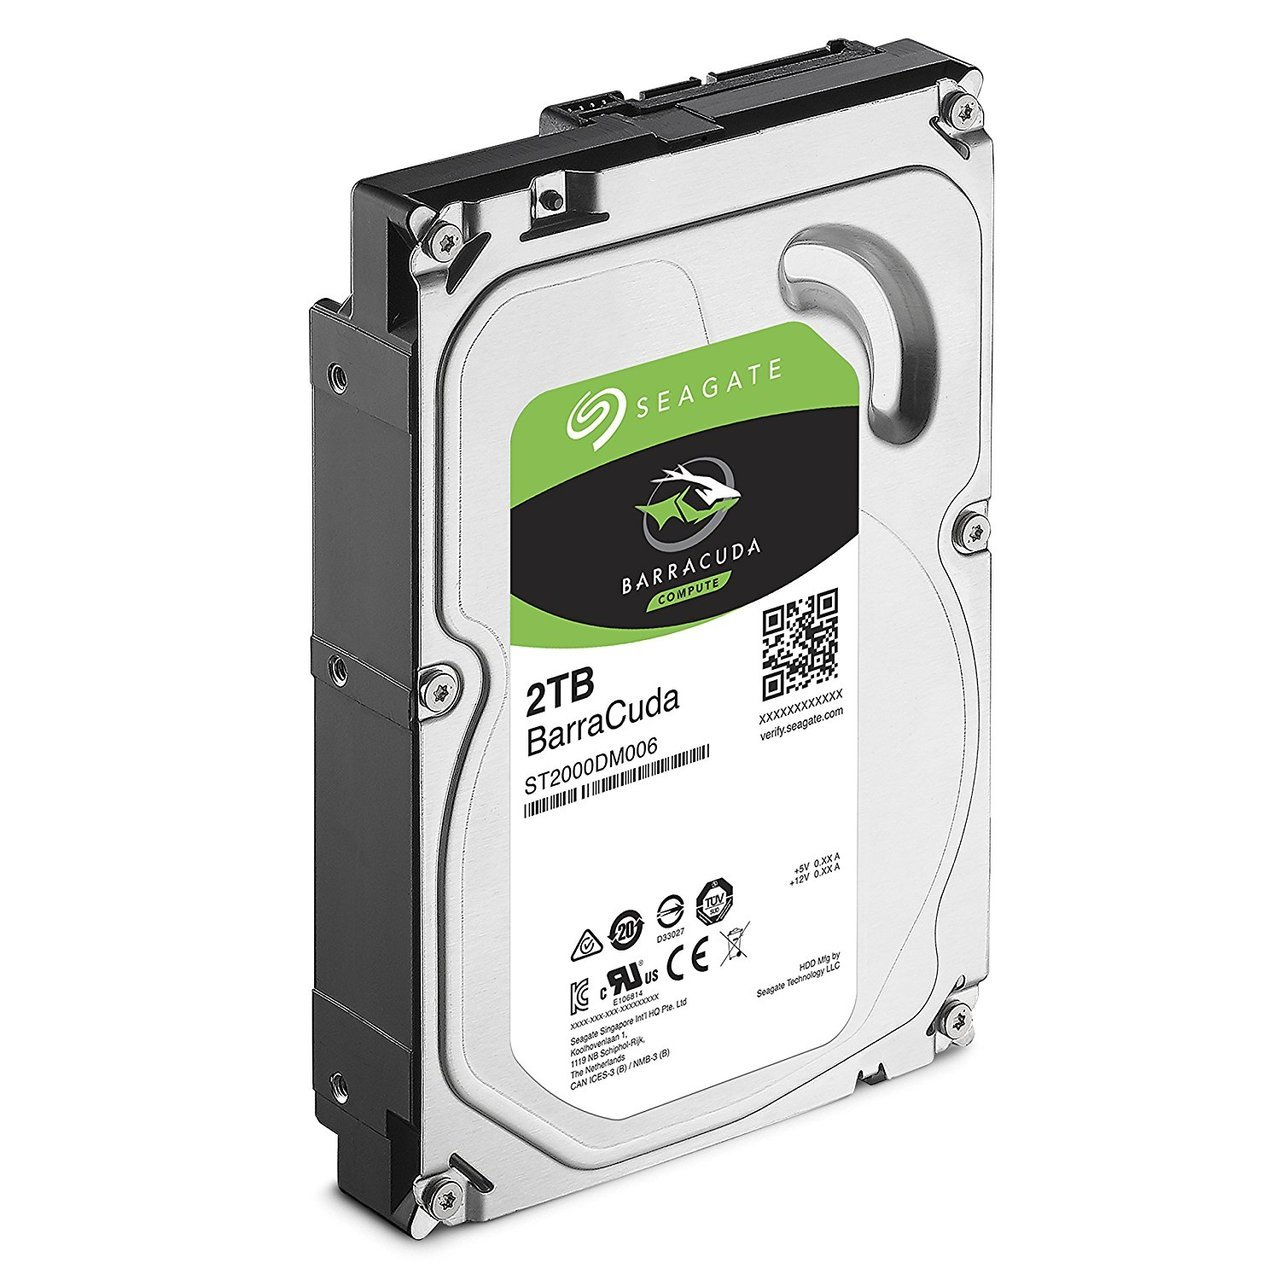 2TB SEAGATE BARRACUDA ,7200 SATA 3 6GB/S 7200RPM 64MB CACHE 8MS INTERNAL HARD DRIVE - OEM, ST2000DM006 SEAGATE - INT HDD BUSN MOBILE ST2000DM001